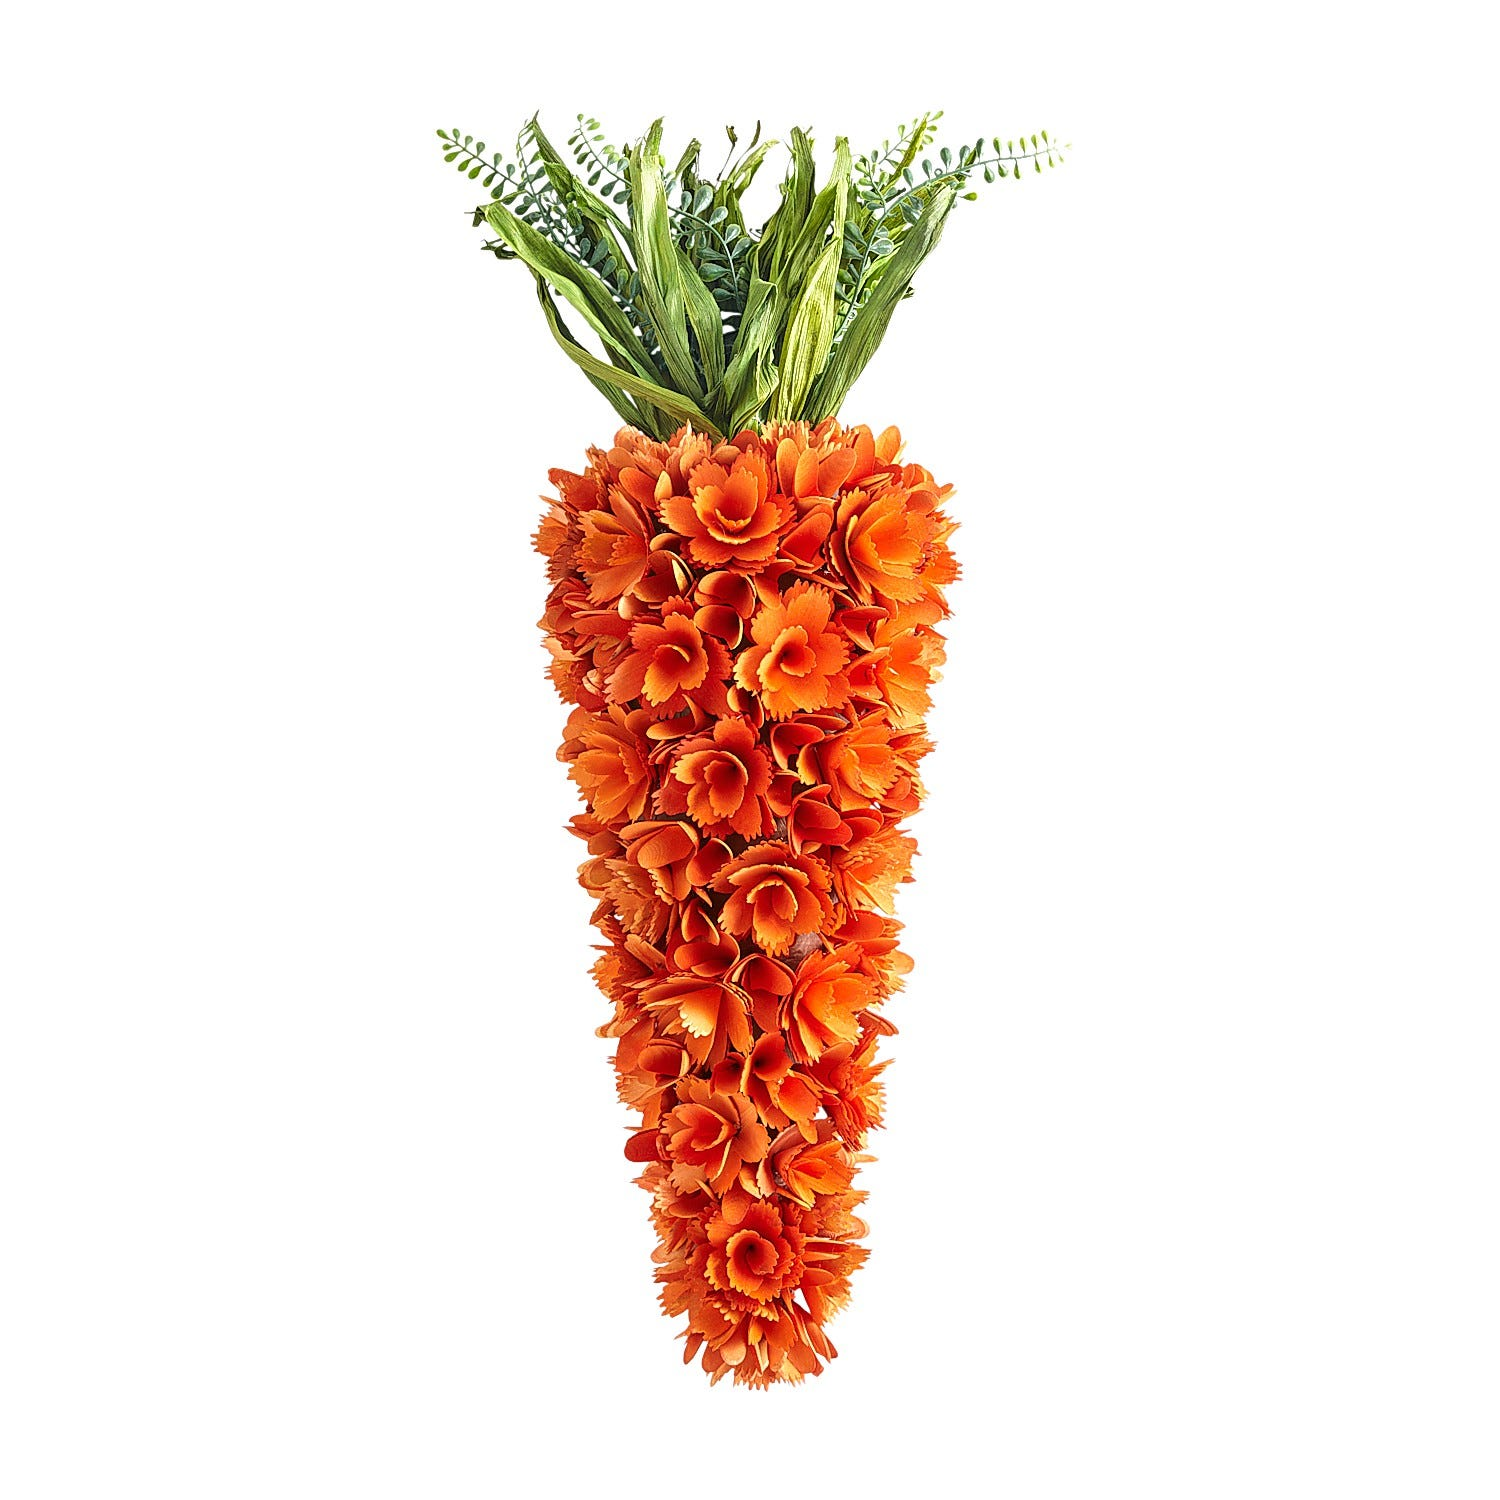 Carrot-Shaped Wreath